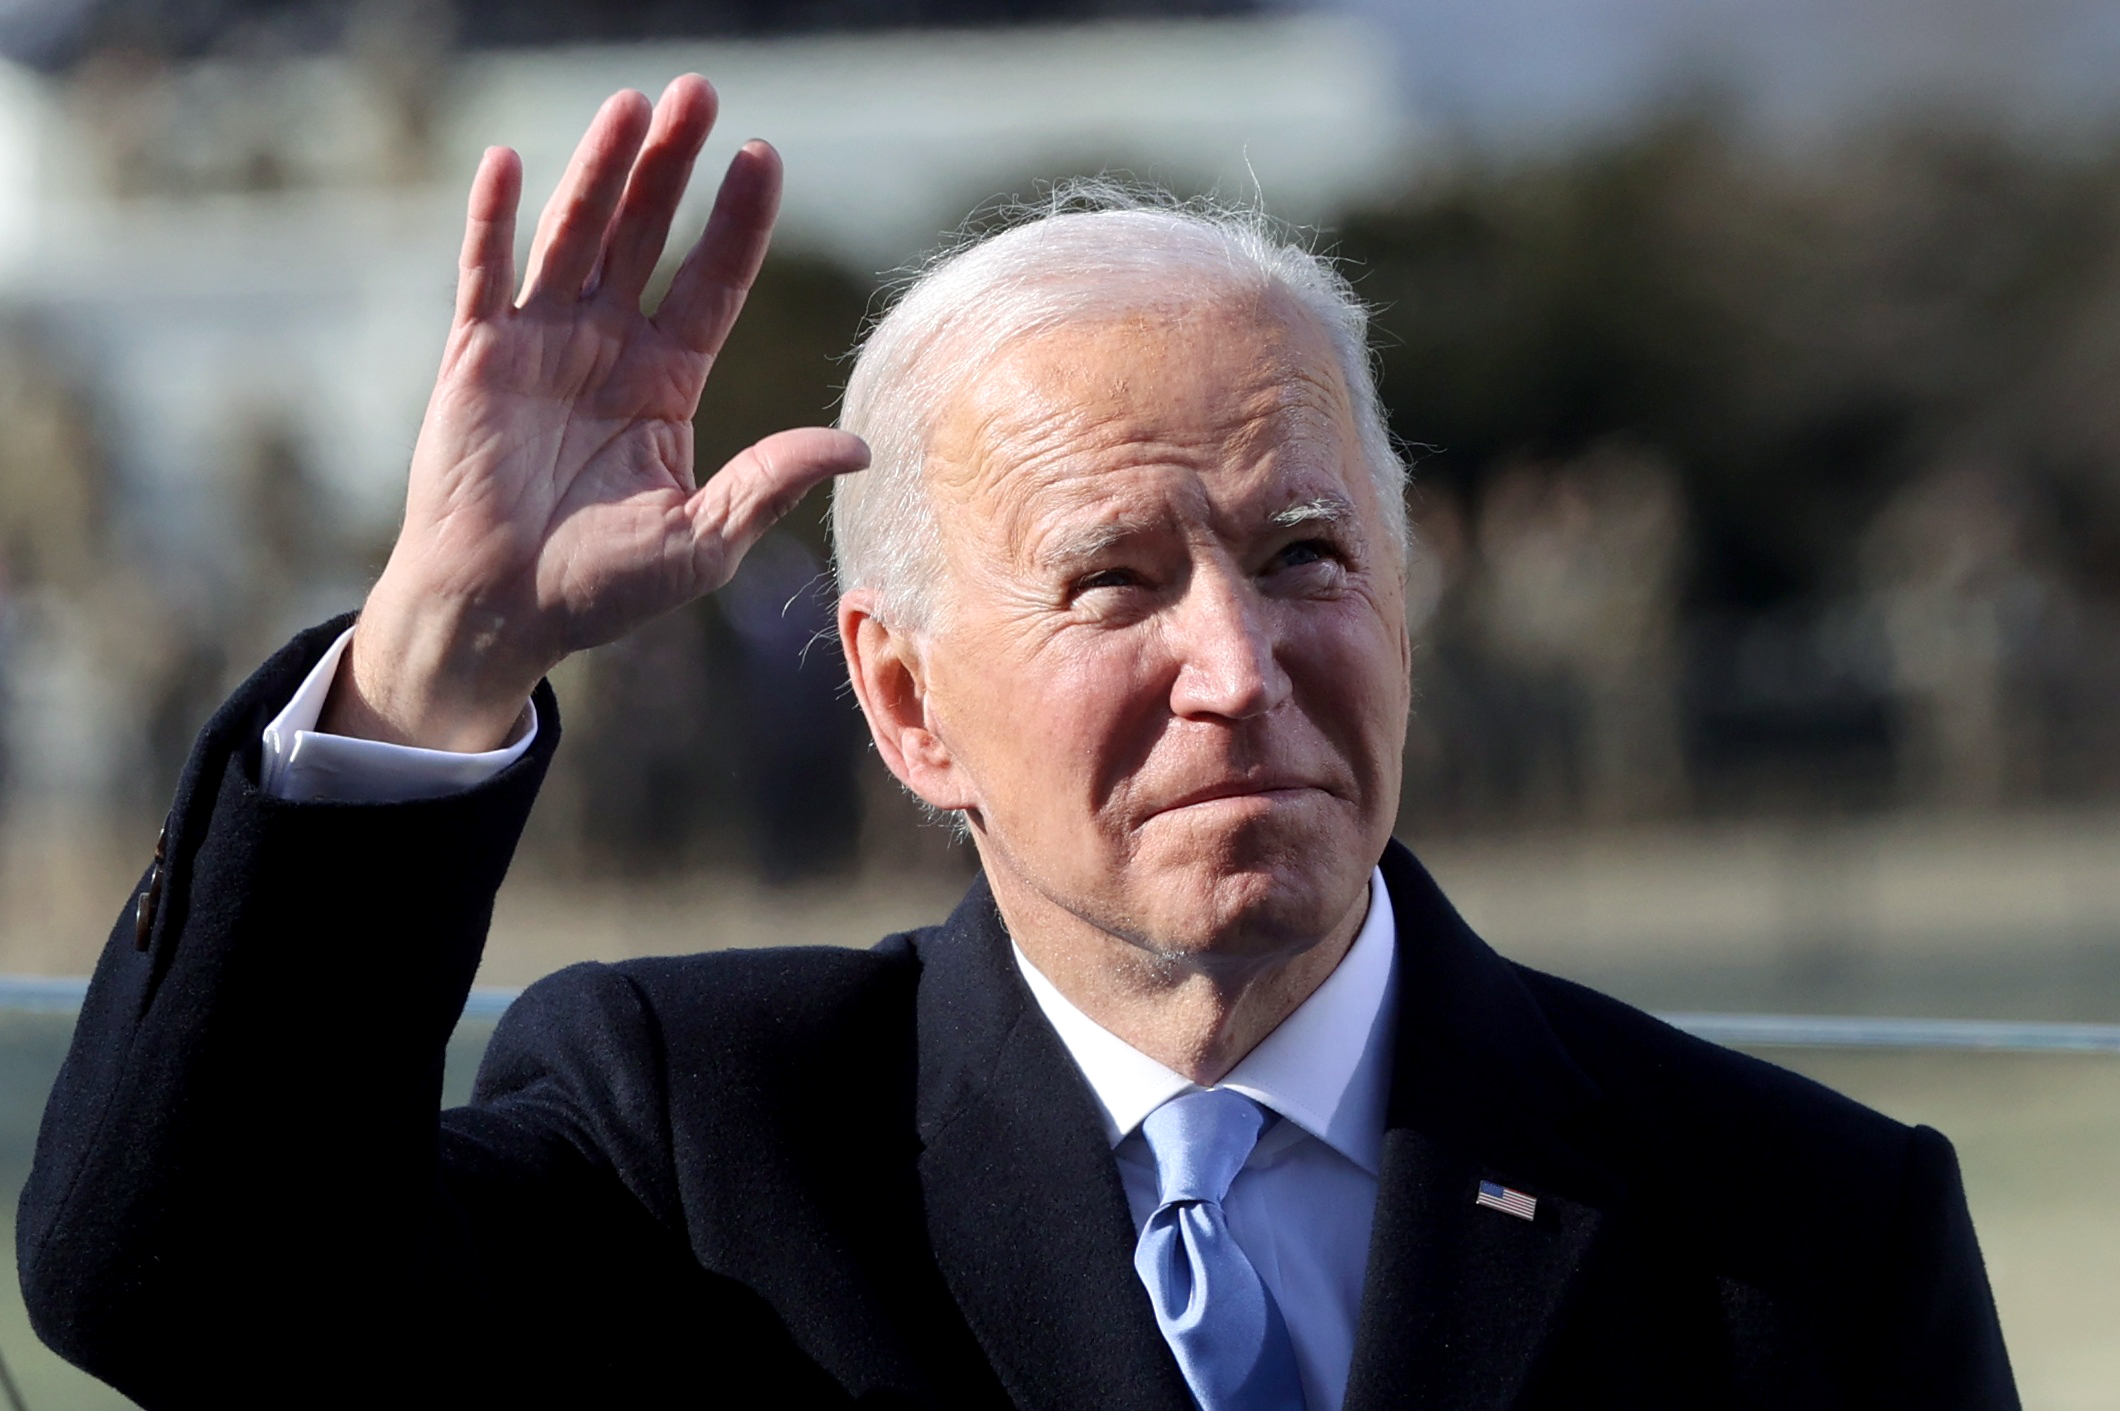 WASHINGTON, DC - JANUARY 20: President Joe Biden waves after being sworn in during his inauguration on the West Front of the U.S. Capitol on January 20, 2021 in Washington, DC. During today's inauguration ceremony Biden becomes the 46th President of the United States. (Photo by Jonathan Ernst-Pool/Getty Images)